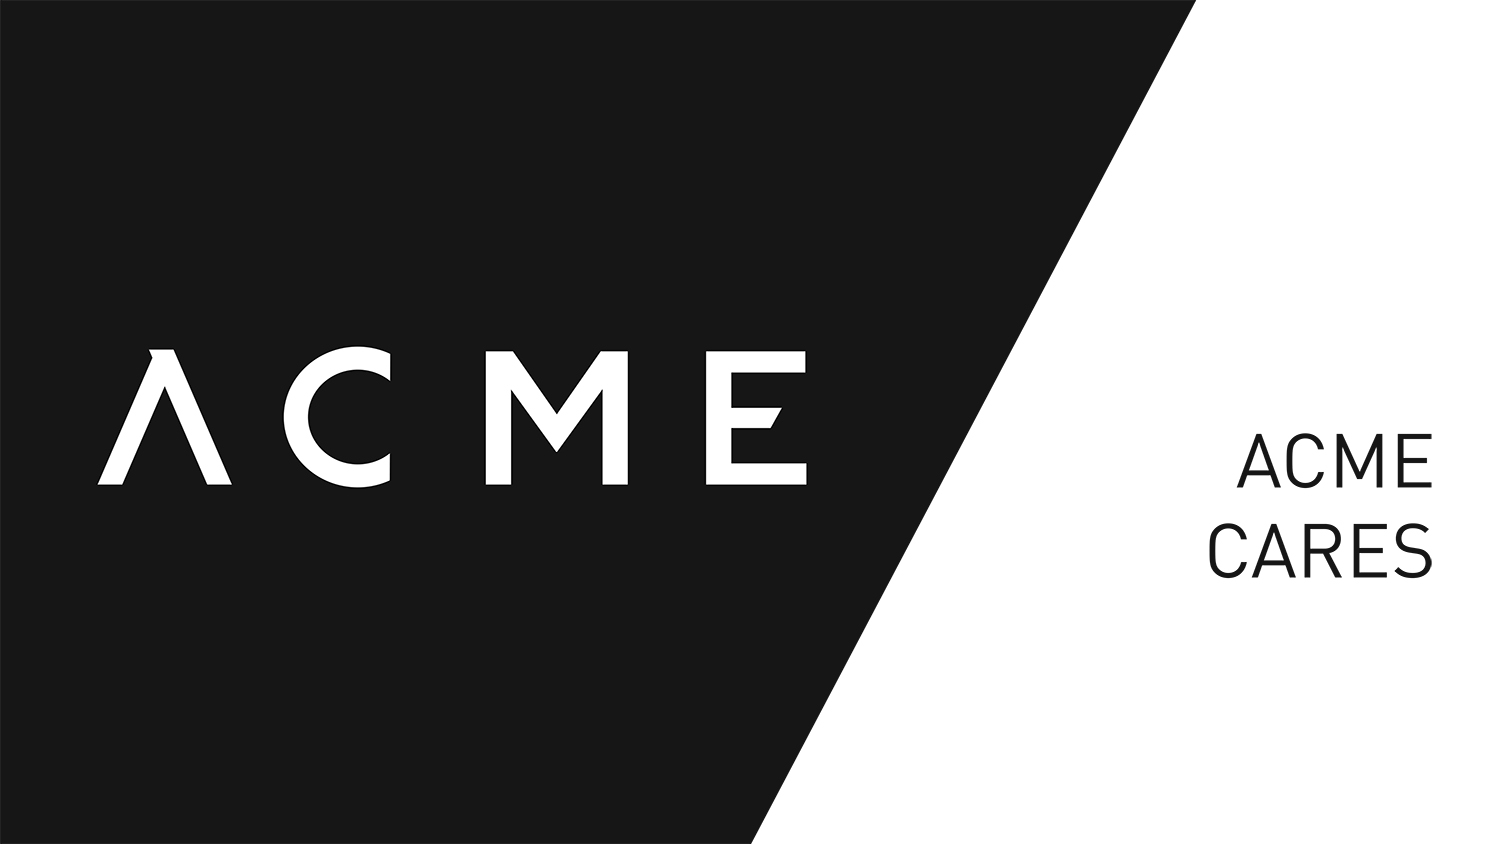 January 28, 2019 ACME CARES FEATURED IMAGE